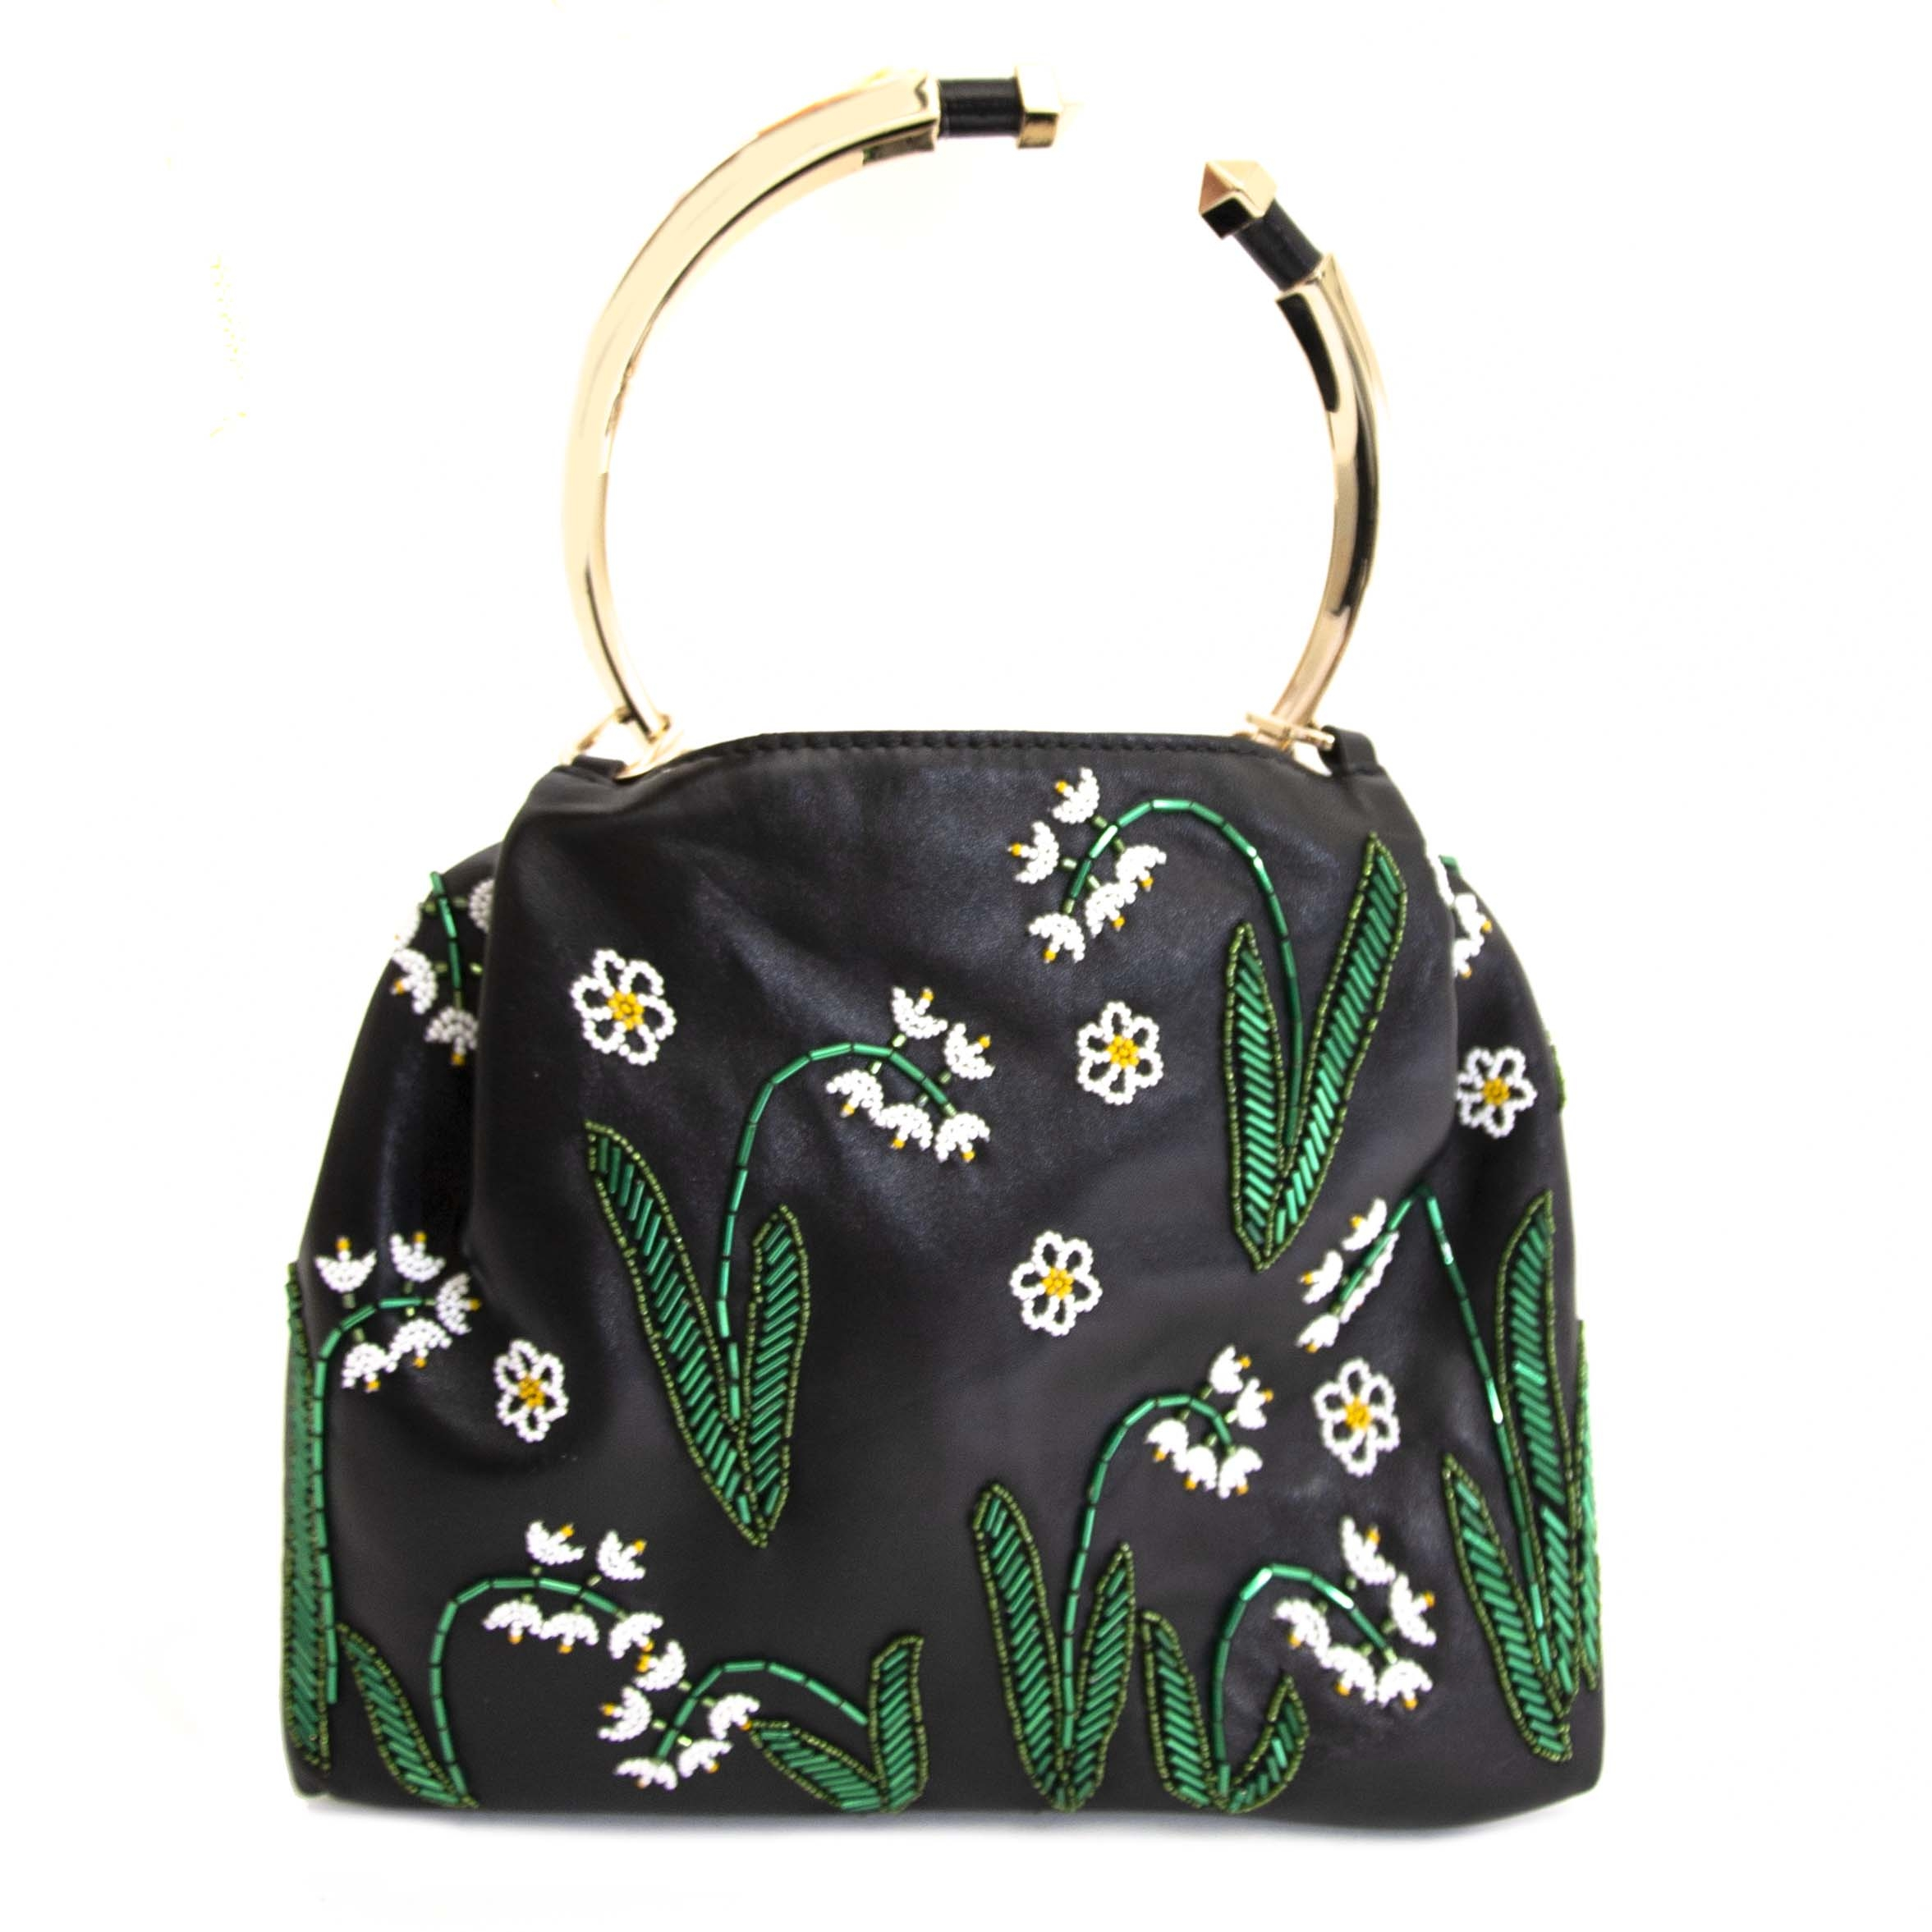 Buy authentic second hand Valentino Ring Handle Floral Embellished Bag at online webshop LabelLOV